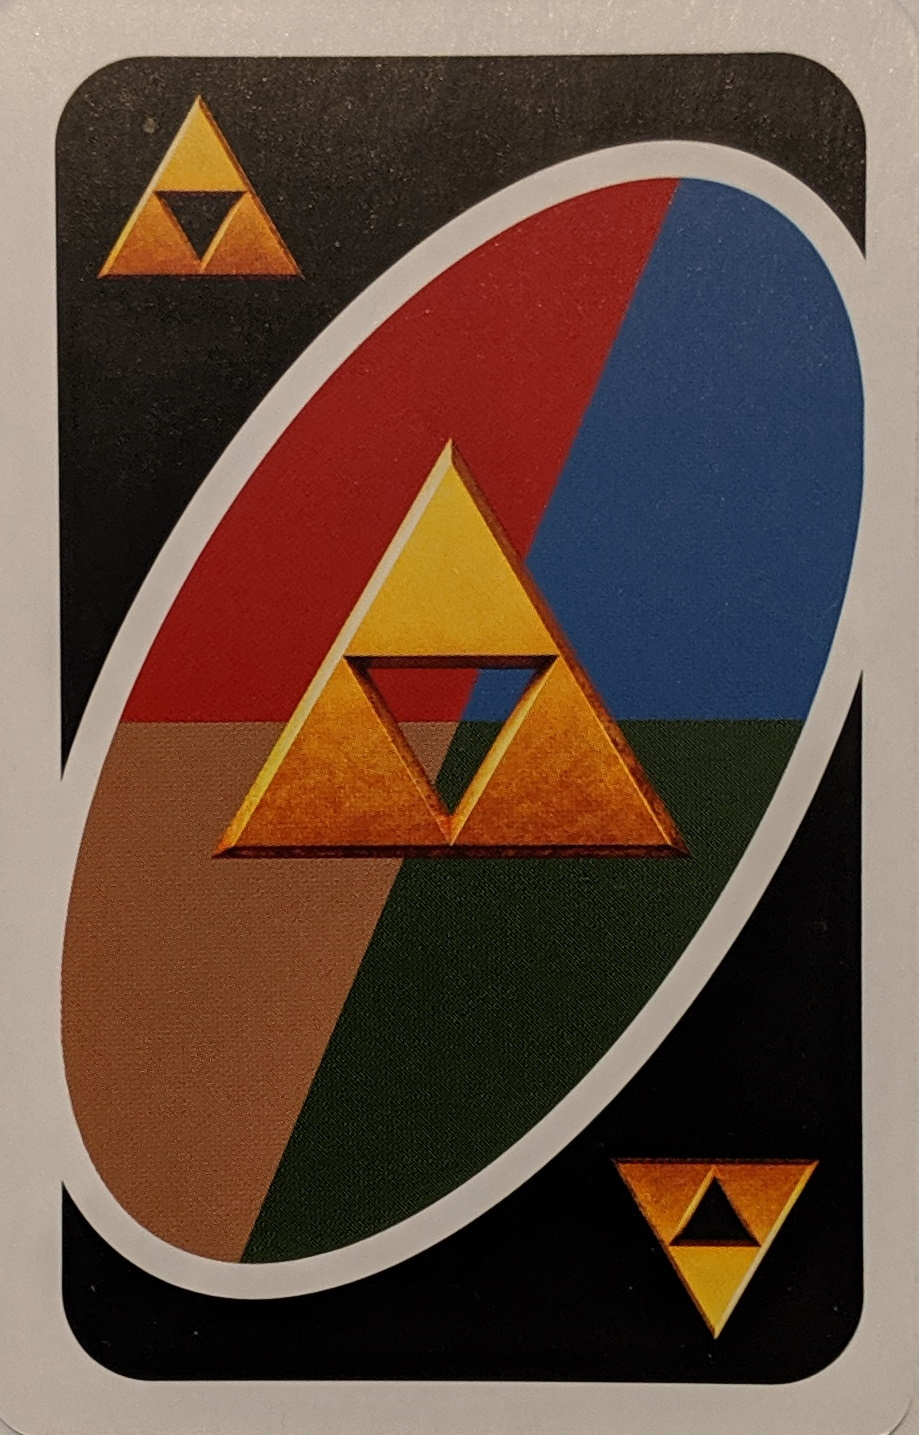 Legend of Zelda Uno (Triforce Card)